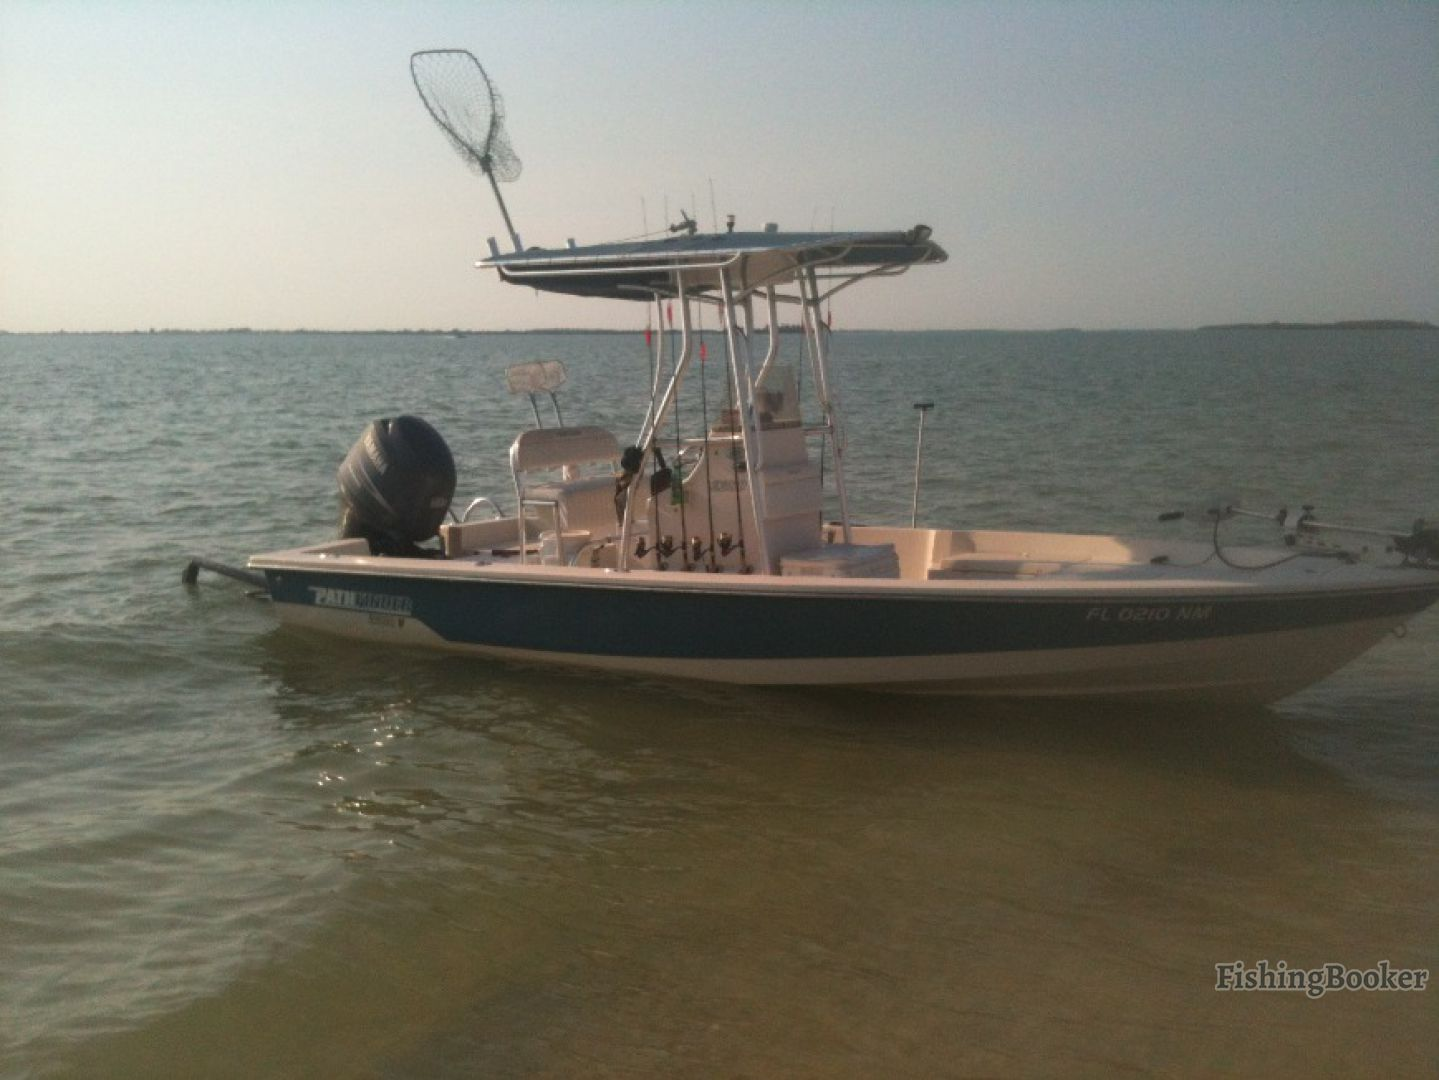 Sea reed charters fort myers florida for Fishing charters fort myers florida